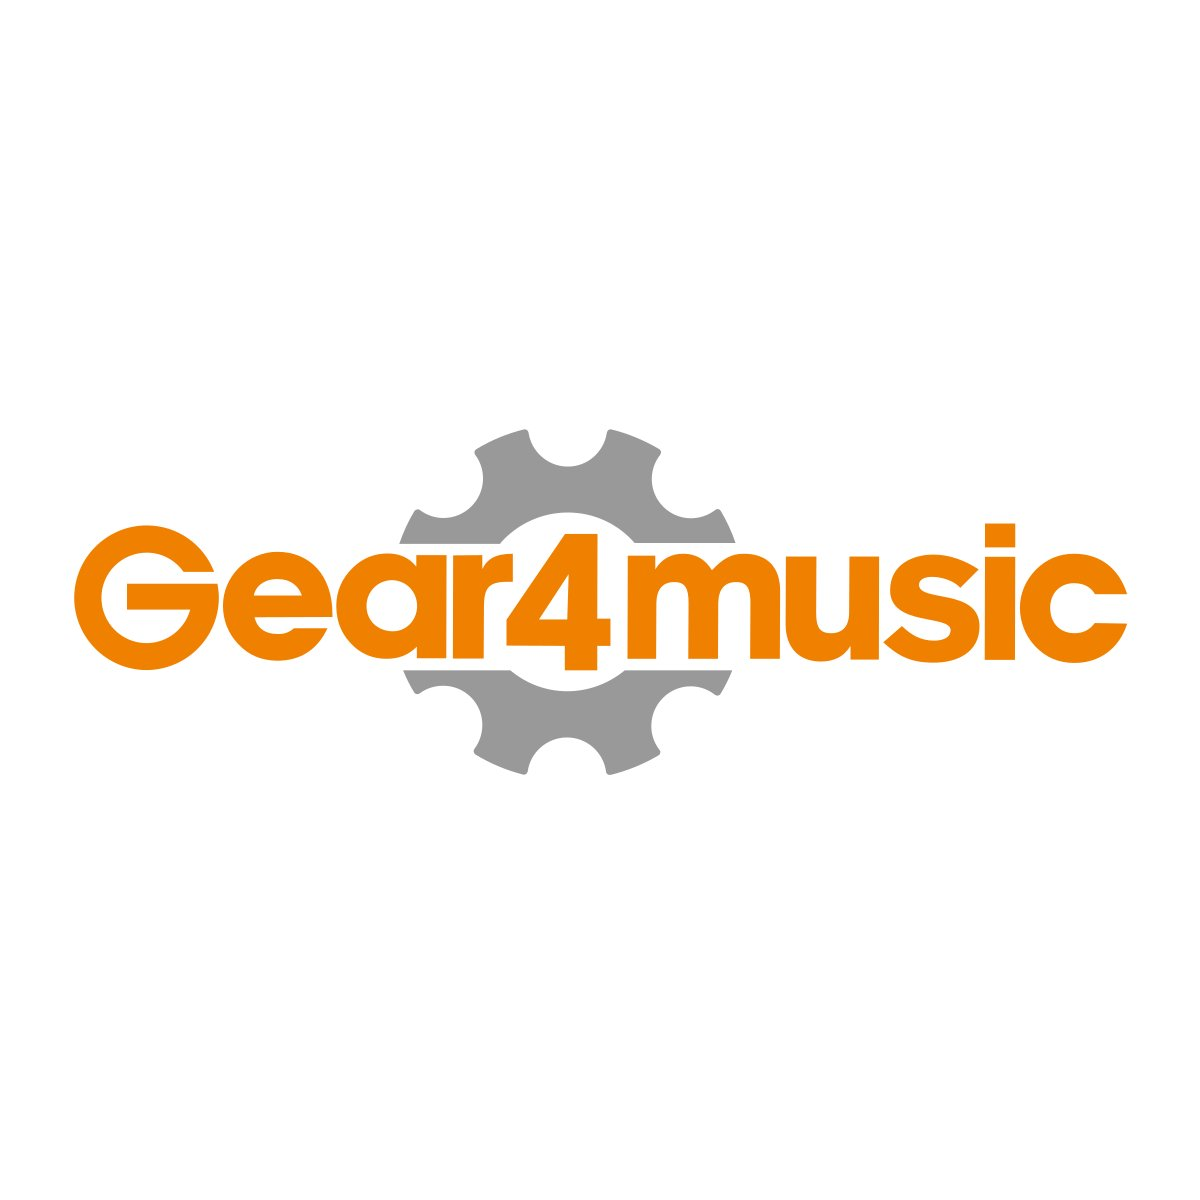 Pochodu Euphonium by Gear4music